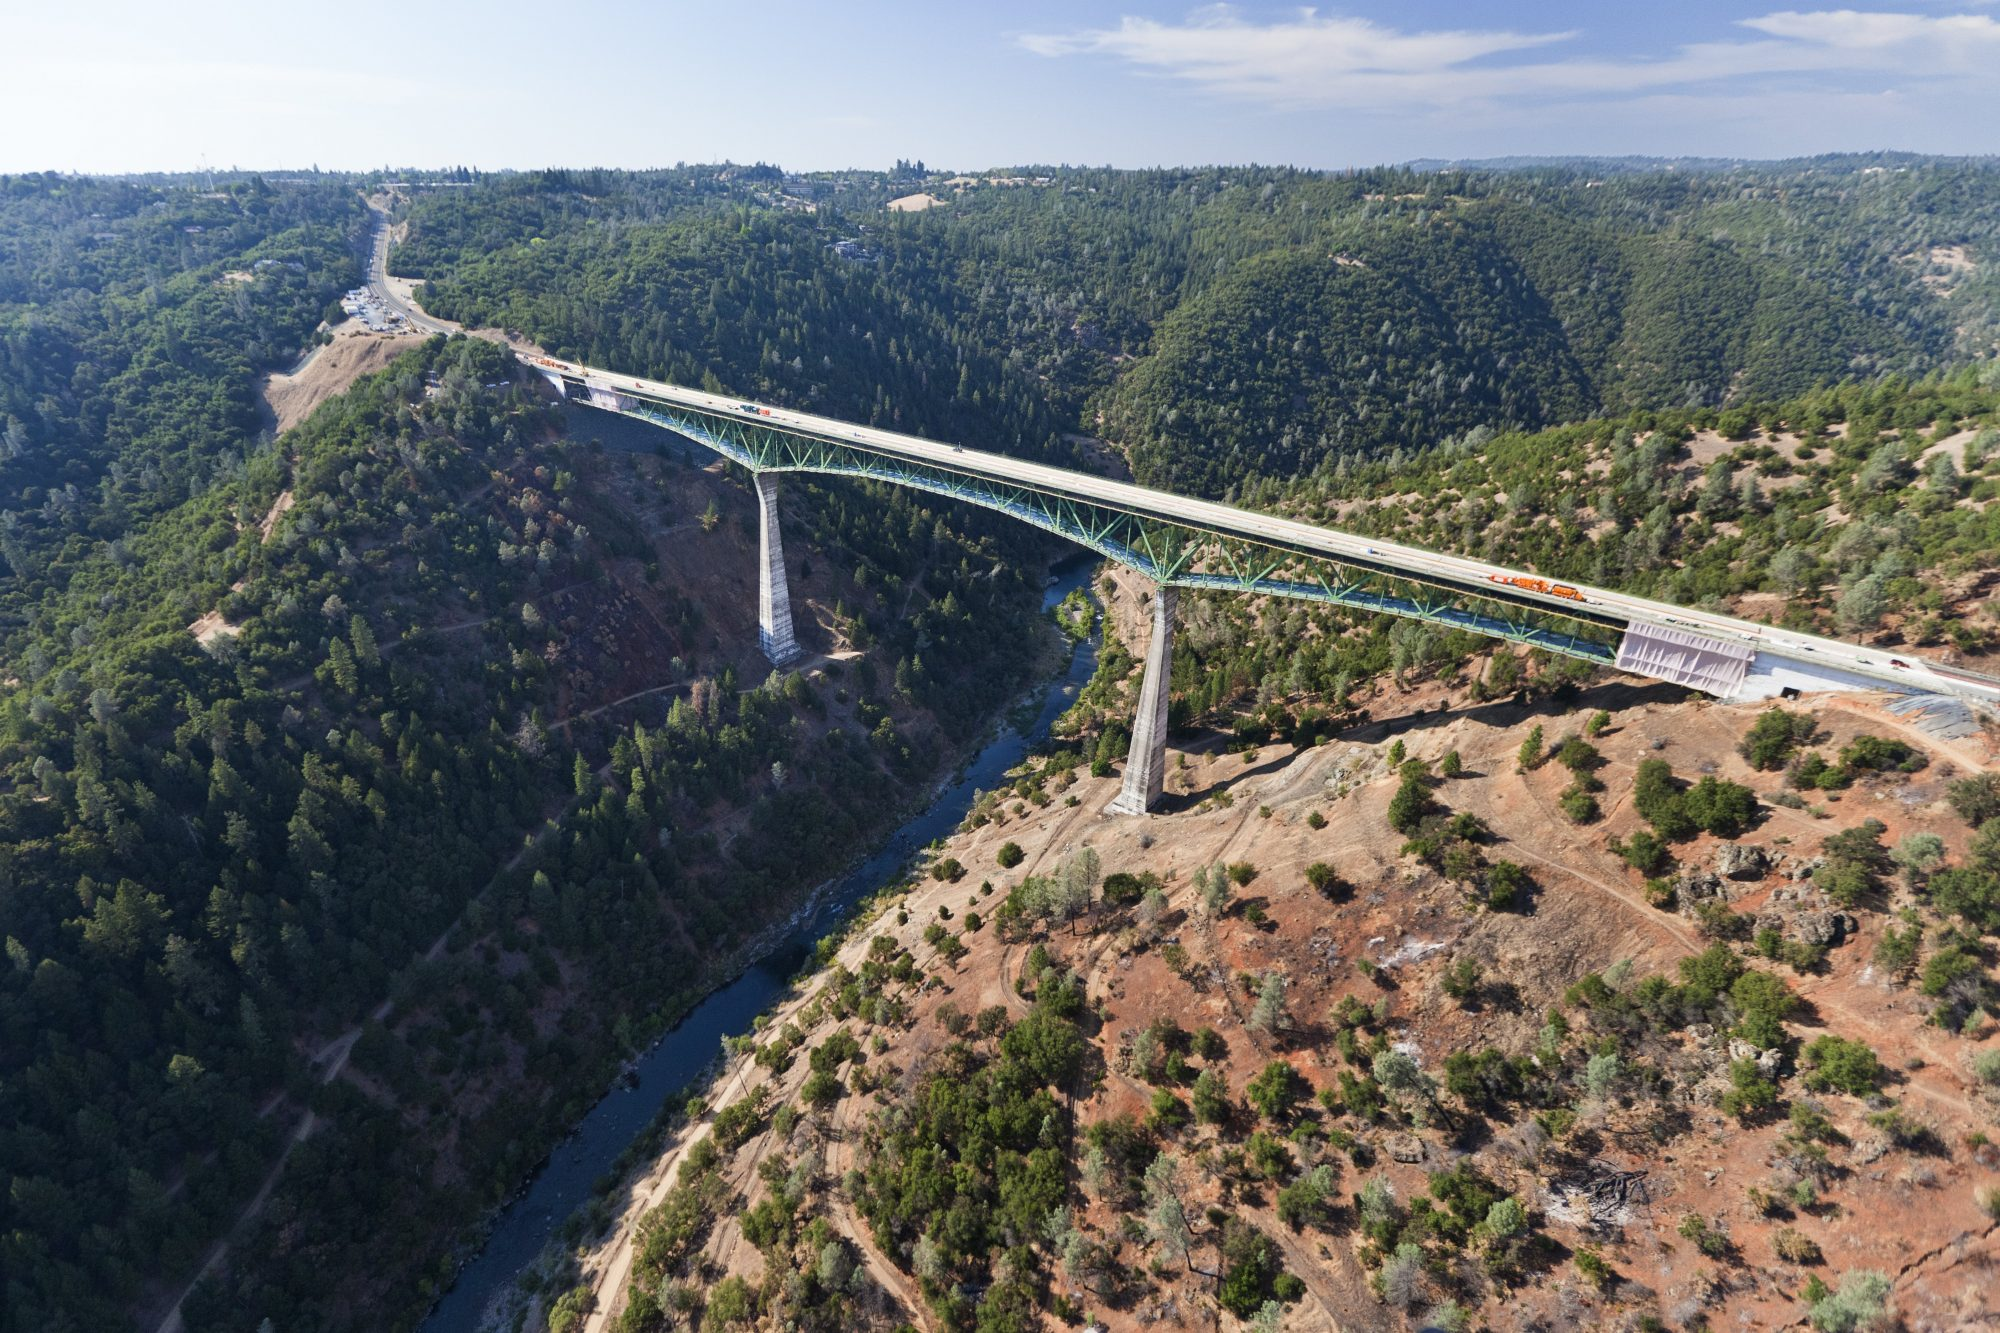 USA: Foresthill Bridge over the American River